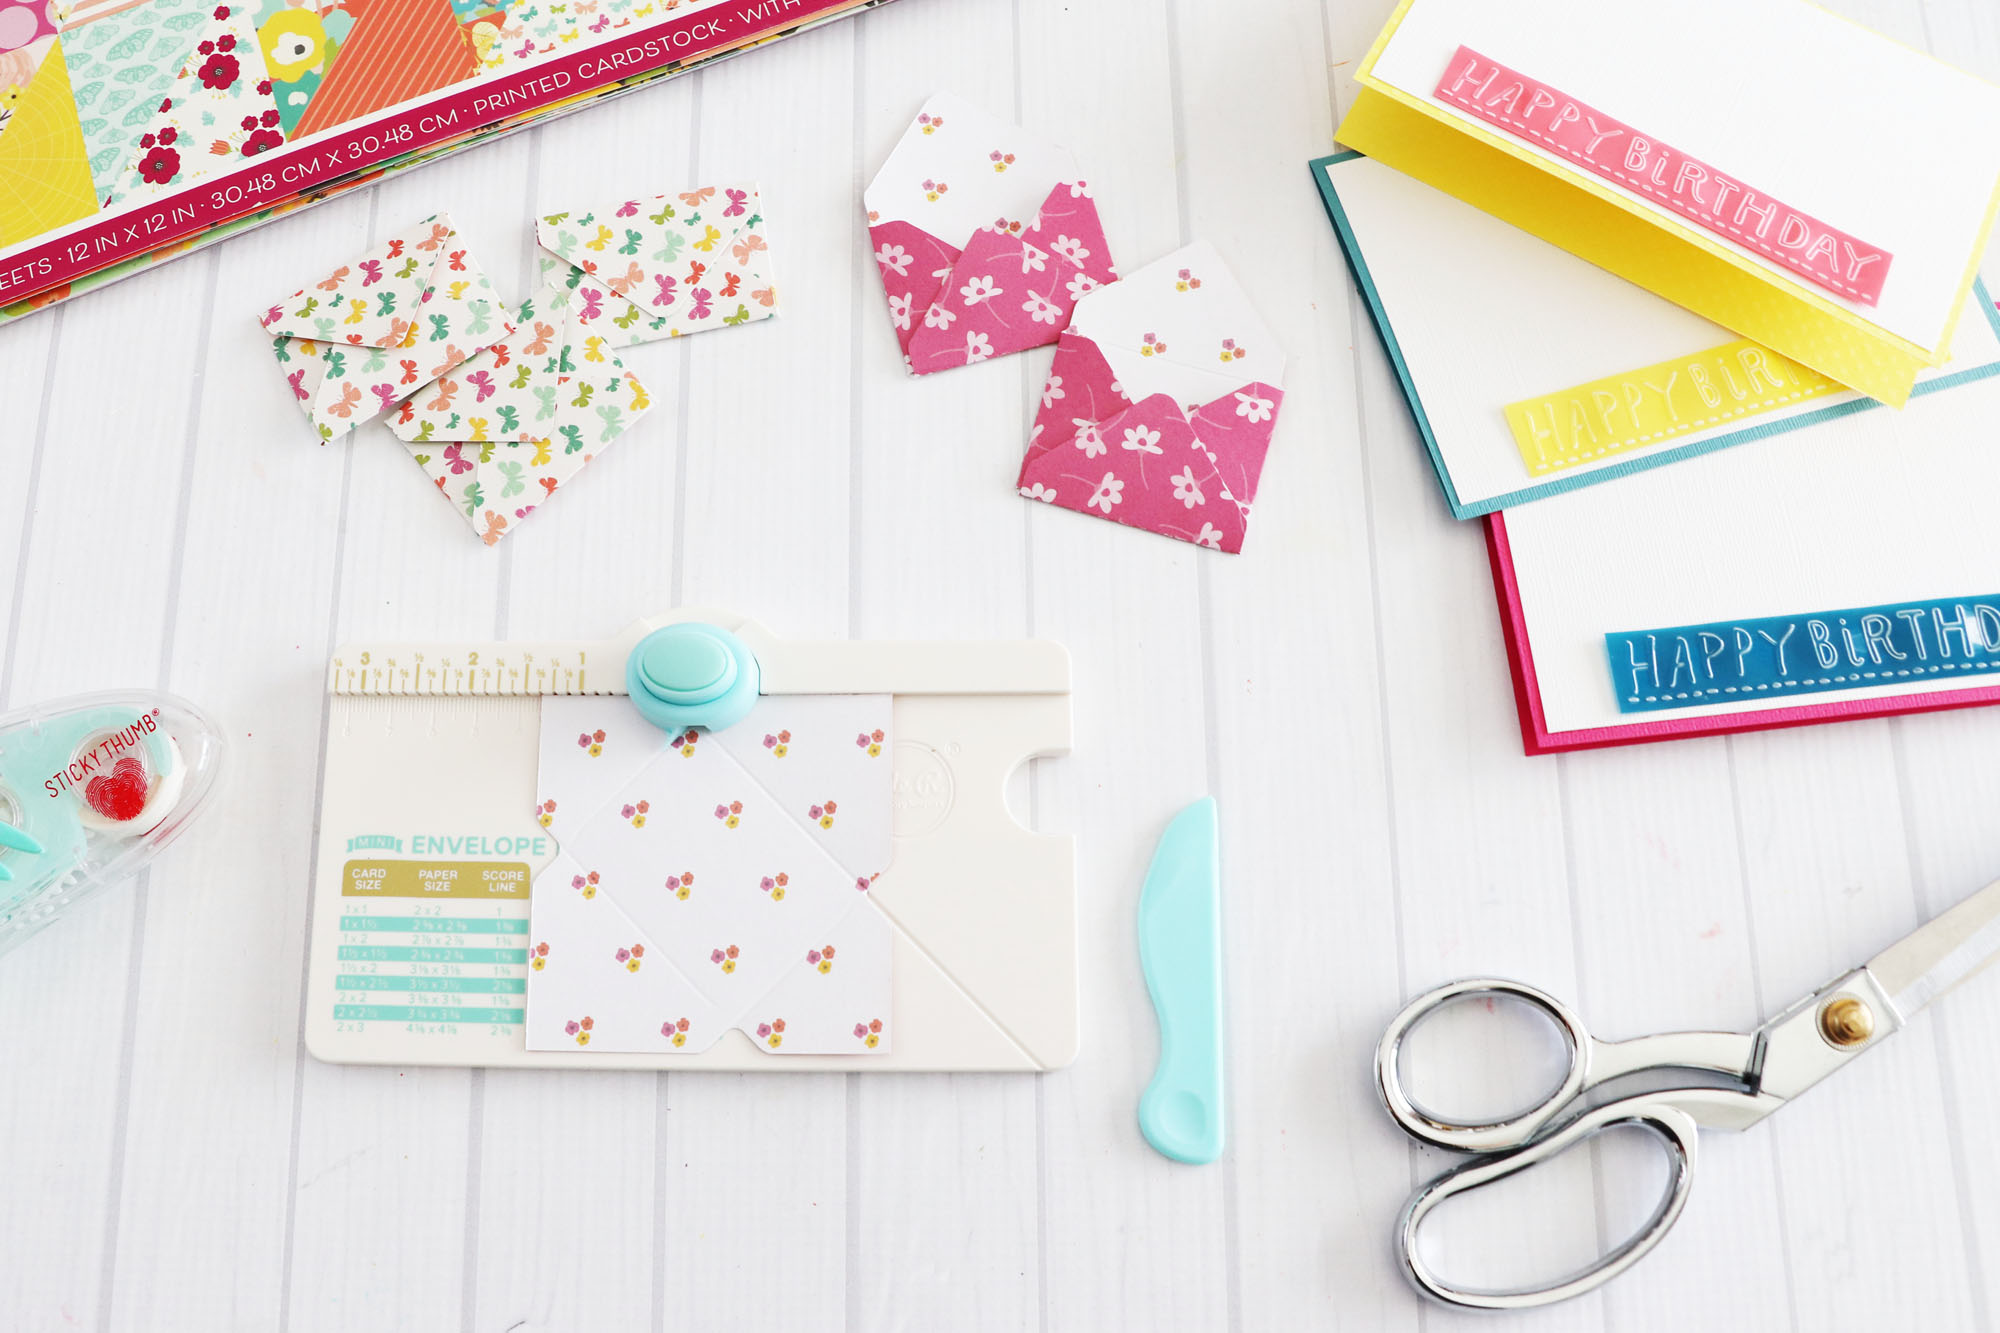 Mini Envelope Birthday Cards by Laura Silva for We R Memory Keepers